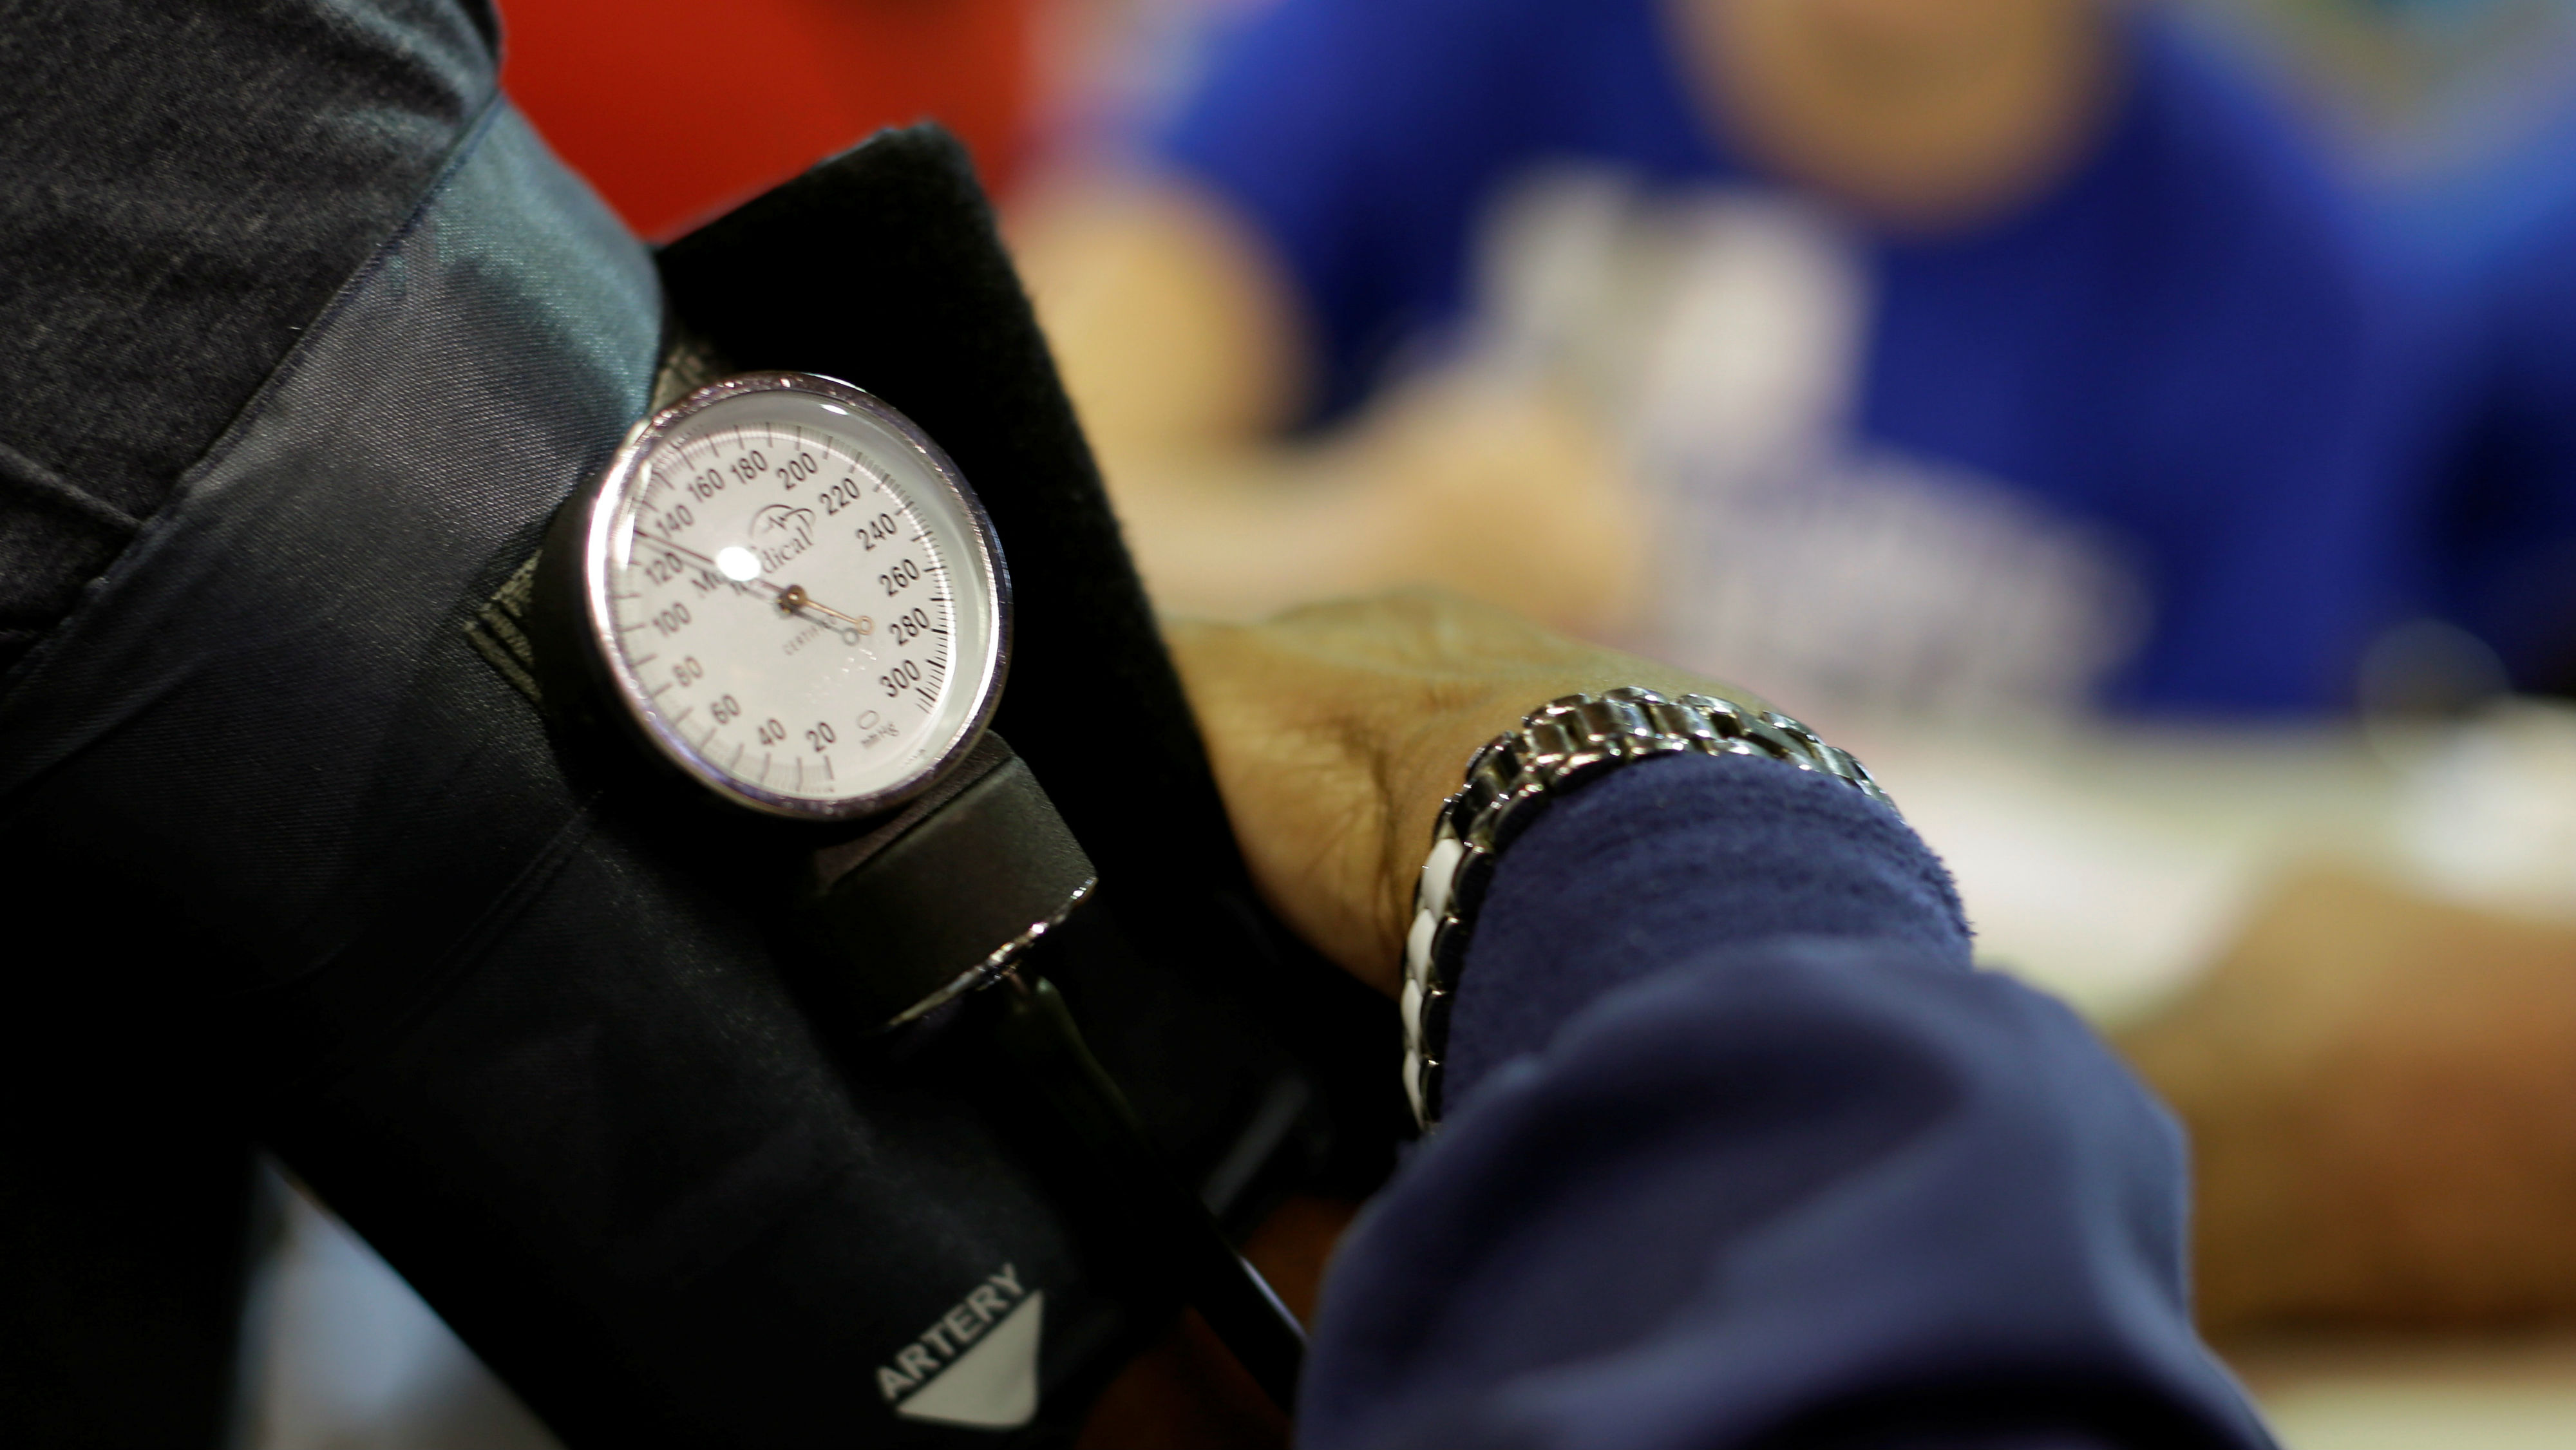 A man has his blood pressure checked at the Remote Area Medical Clinic in Wise, Virginia, U.S., July 22, 2017.